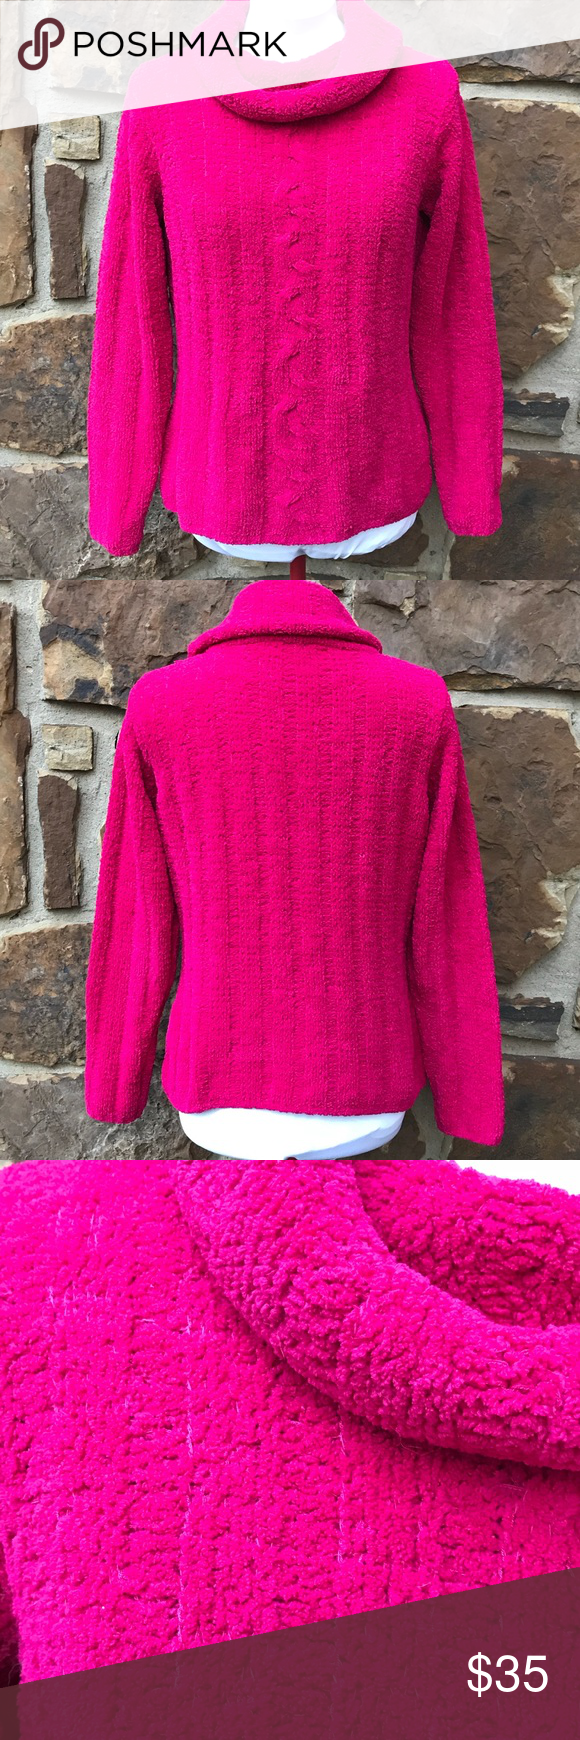 Pierre Cardin Warm and Cozy Sweater | Pierre cardin, Hot pink and Cozy